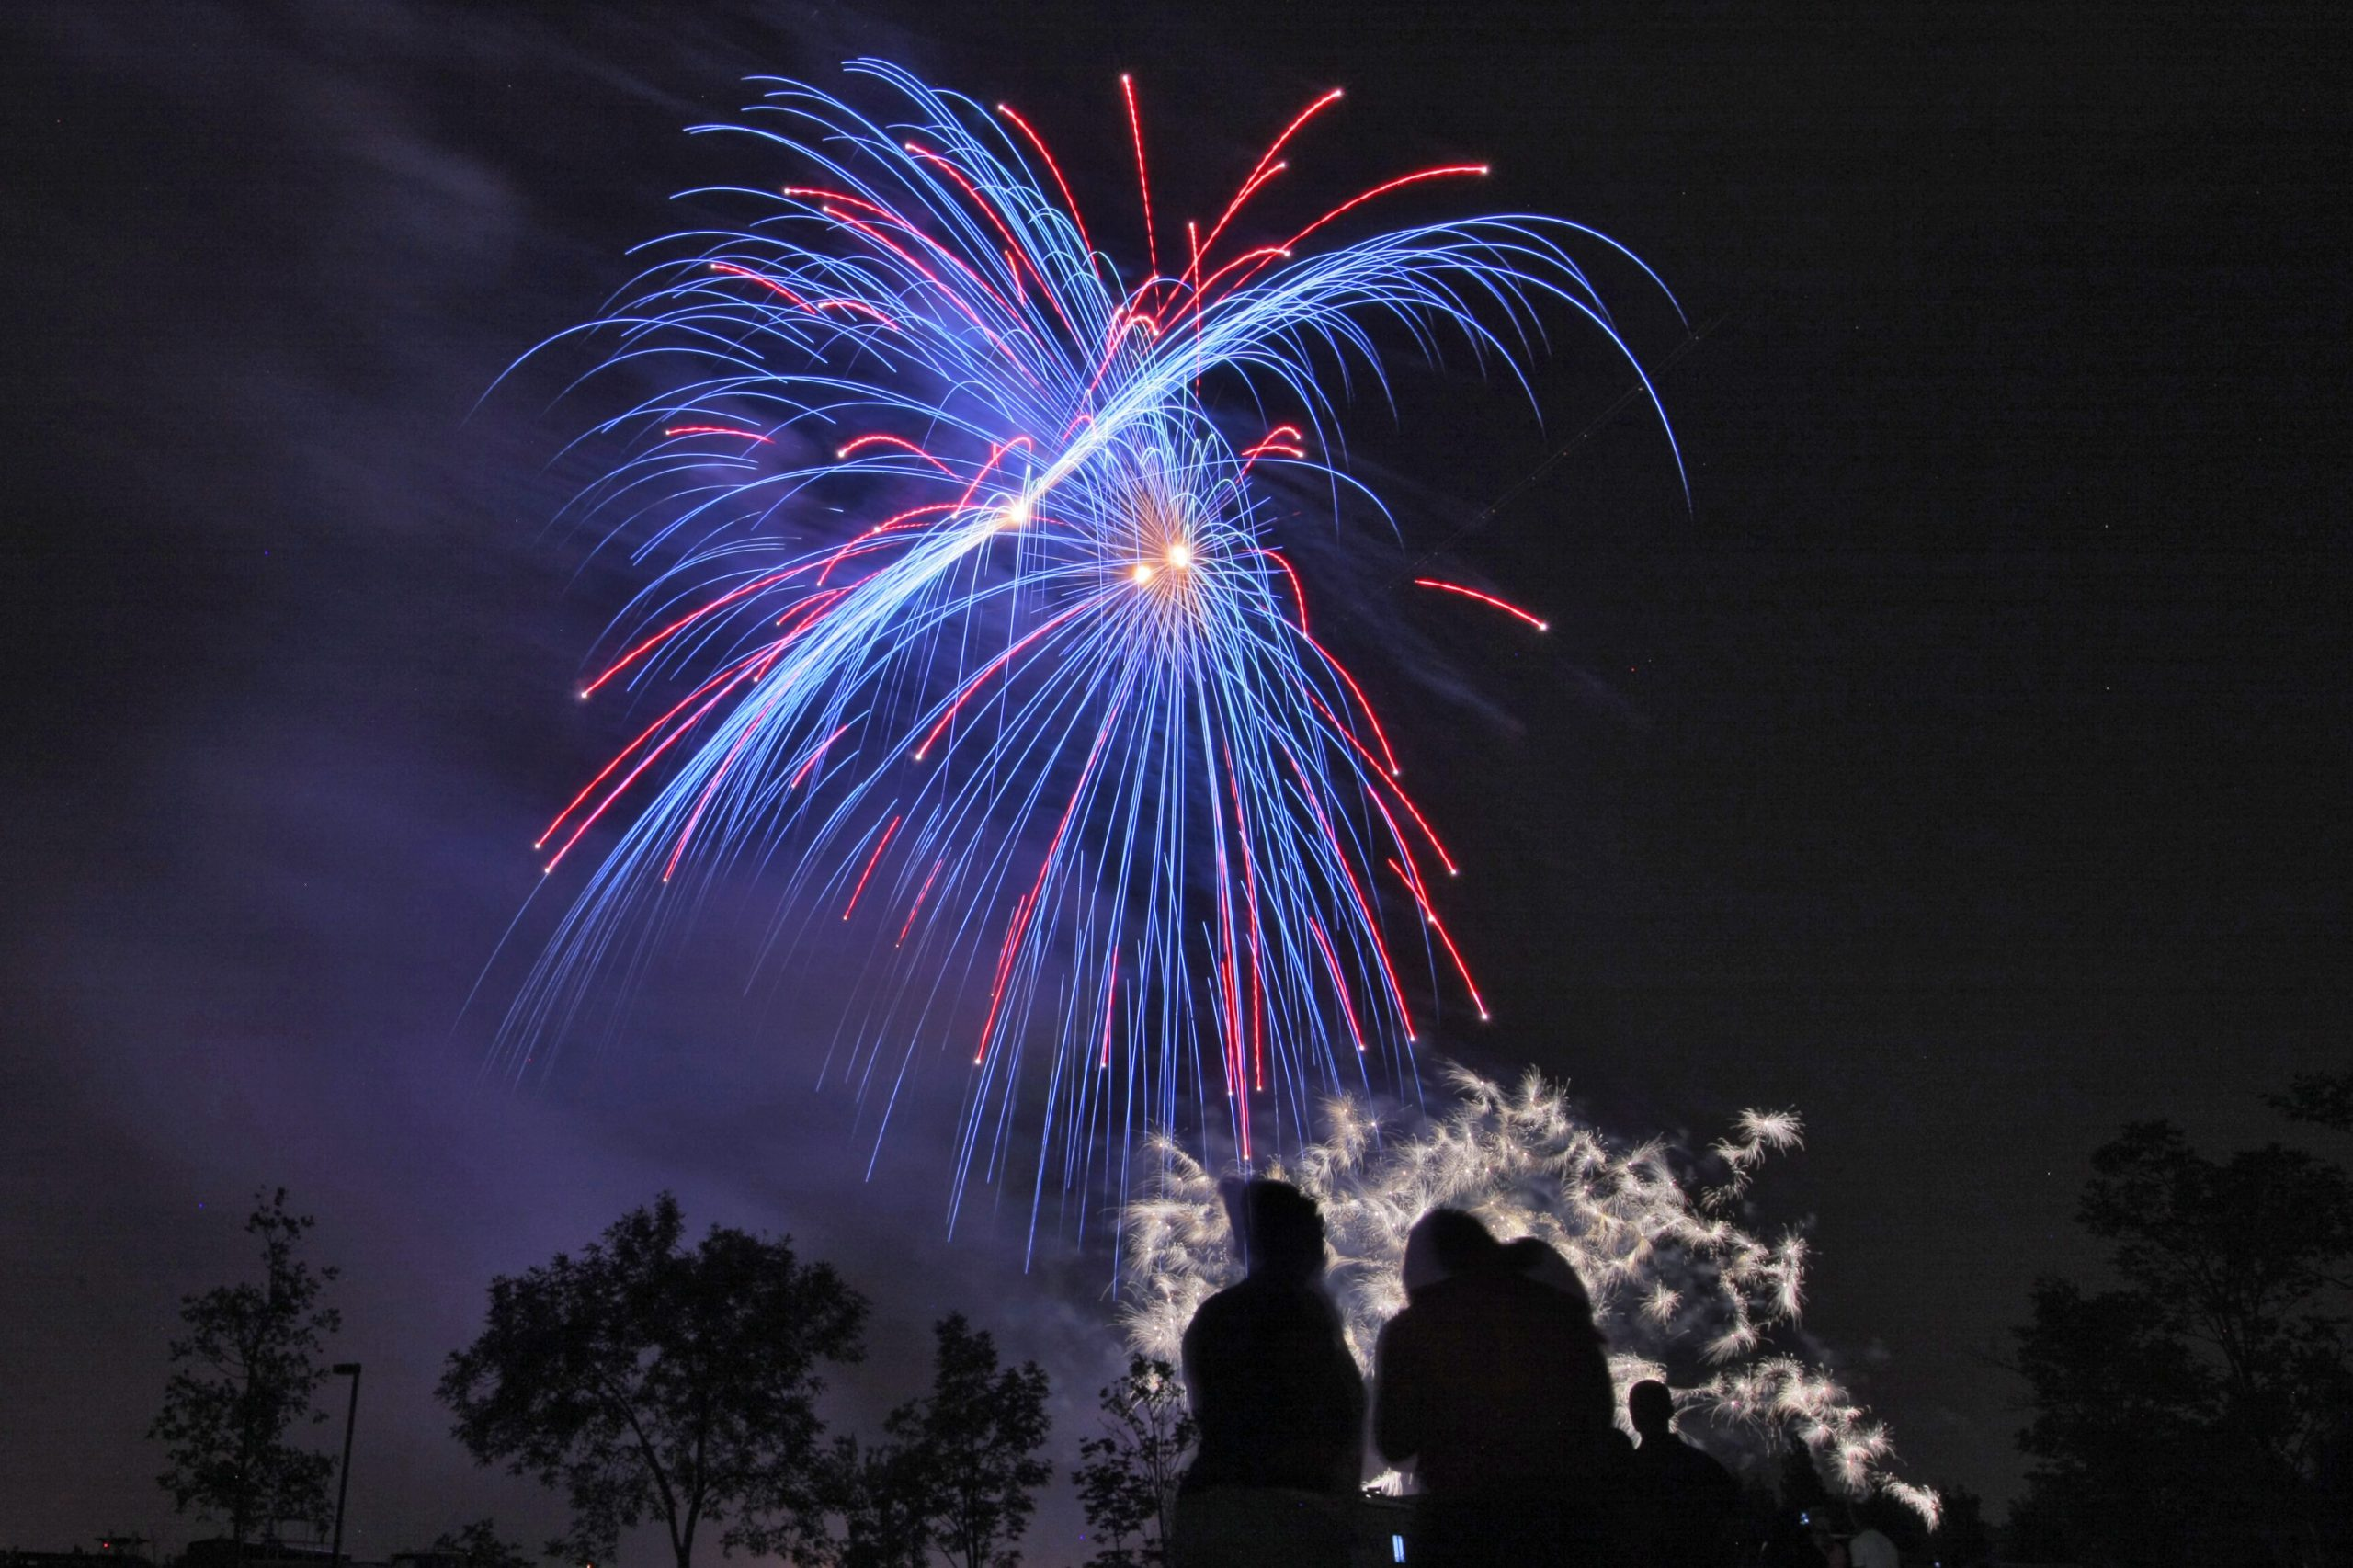 The annual July 4 fireworks show is on, and we're looking forward to celebrating the 244th birthday of the greatest country in the world!